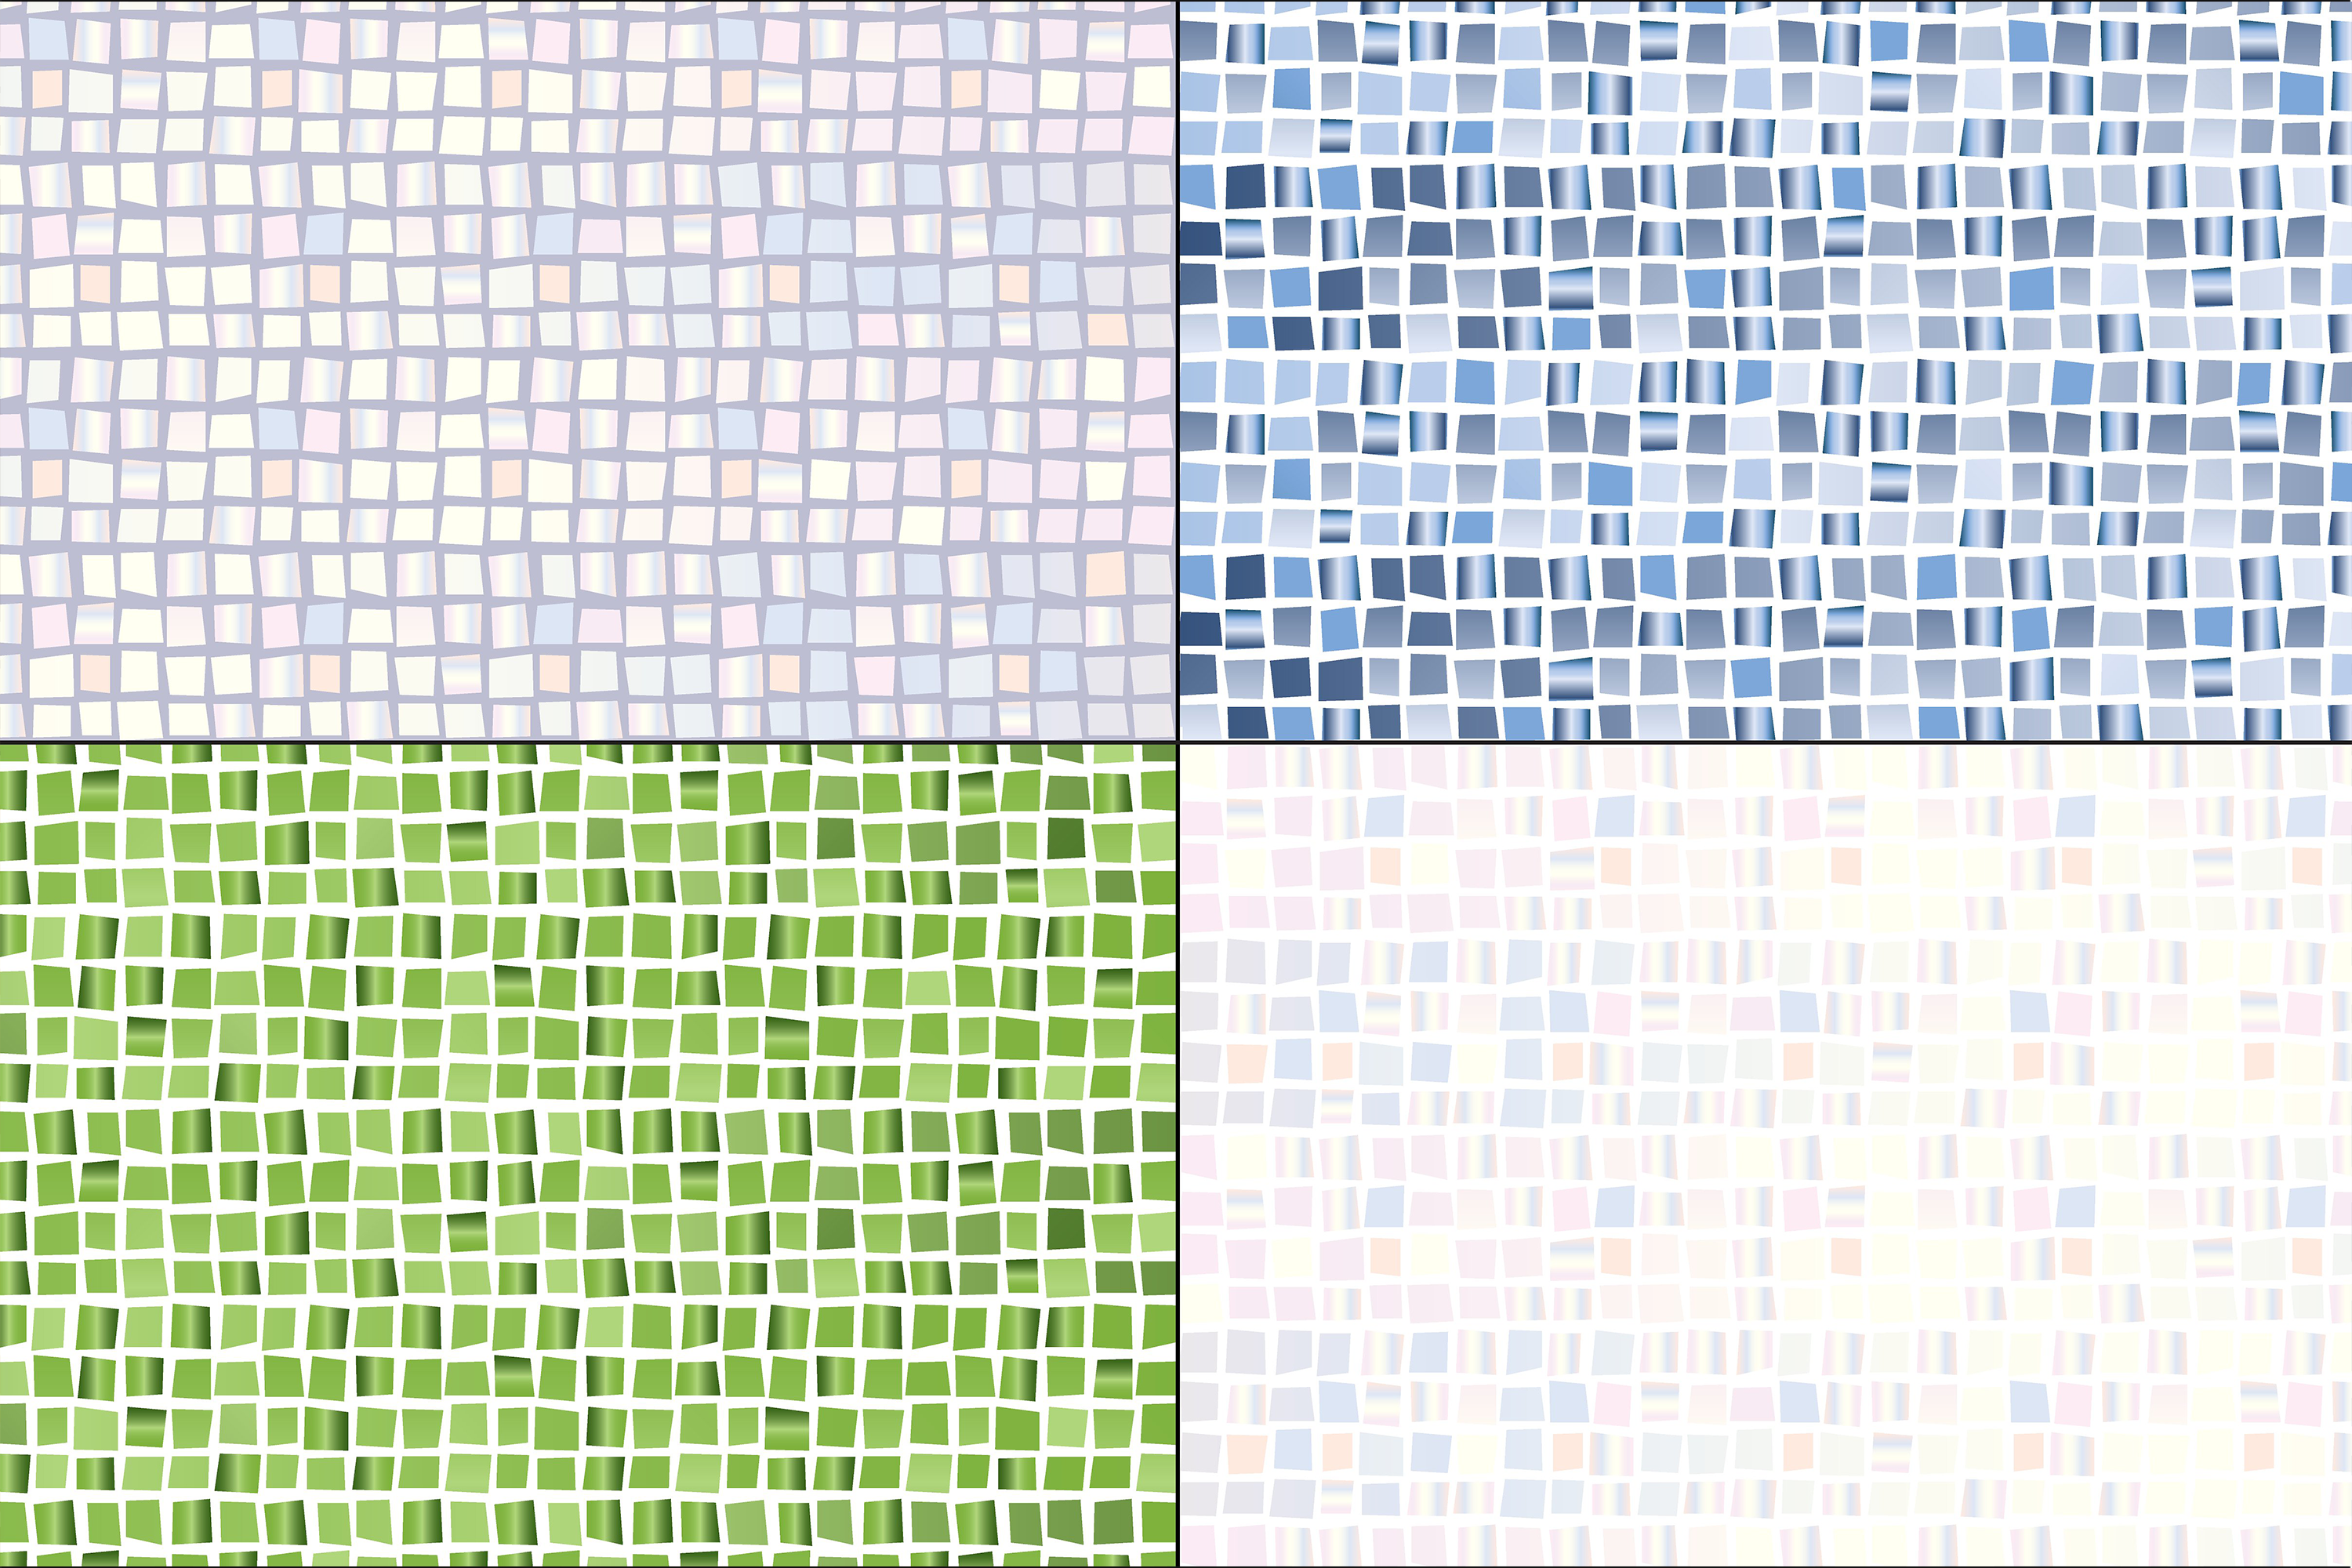 Mosaic Textures example image 4